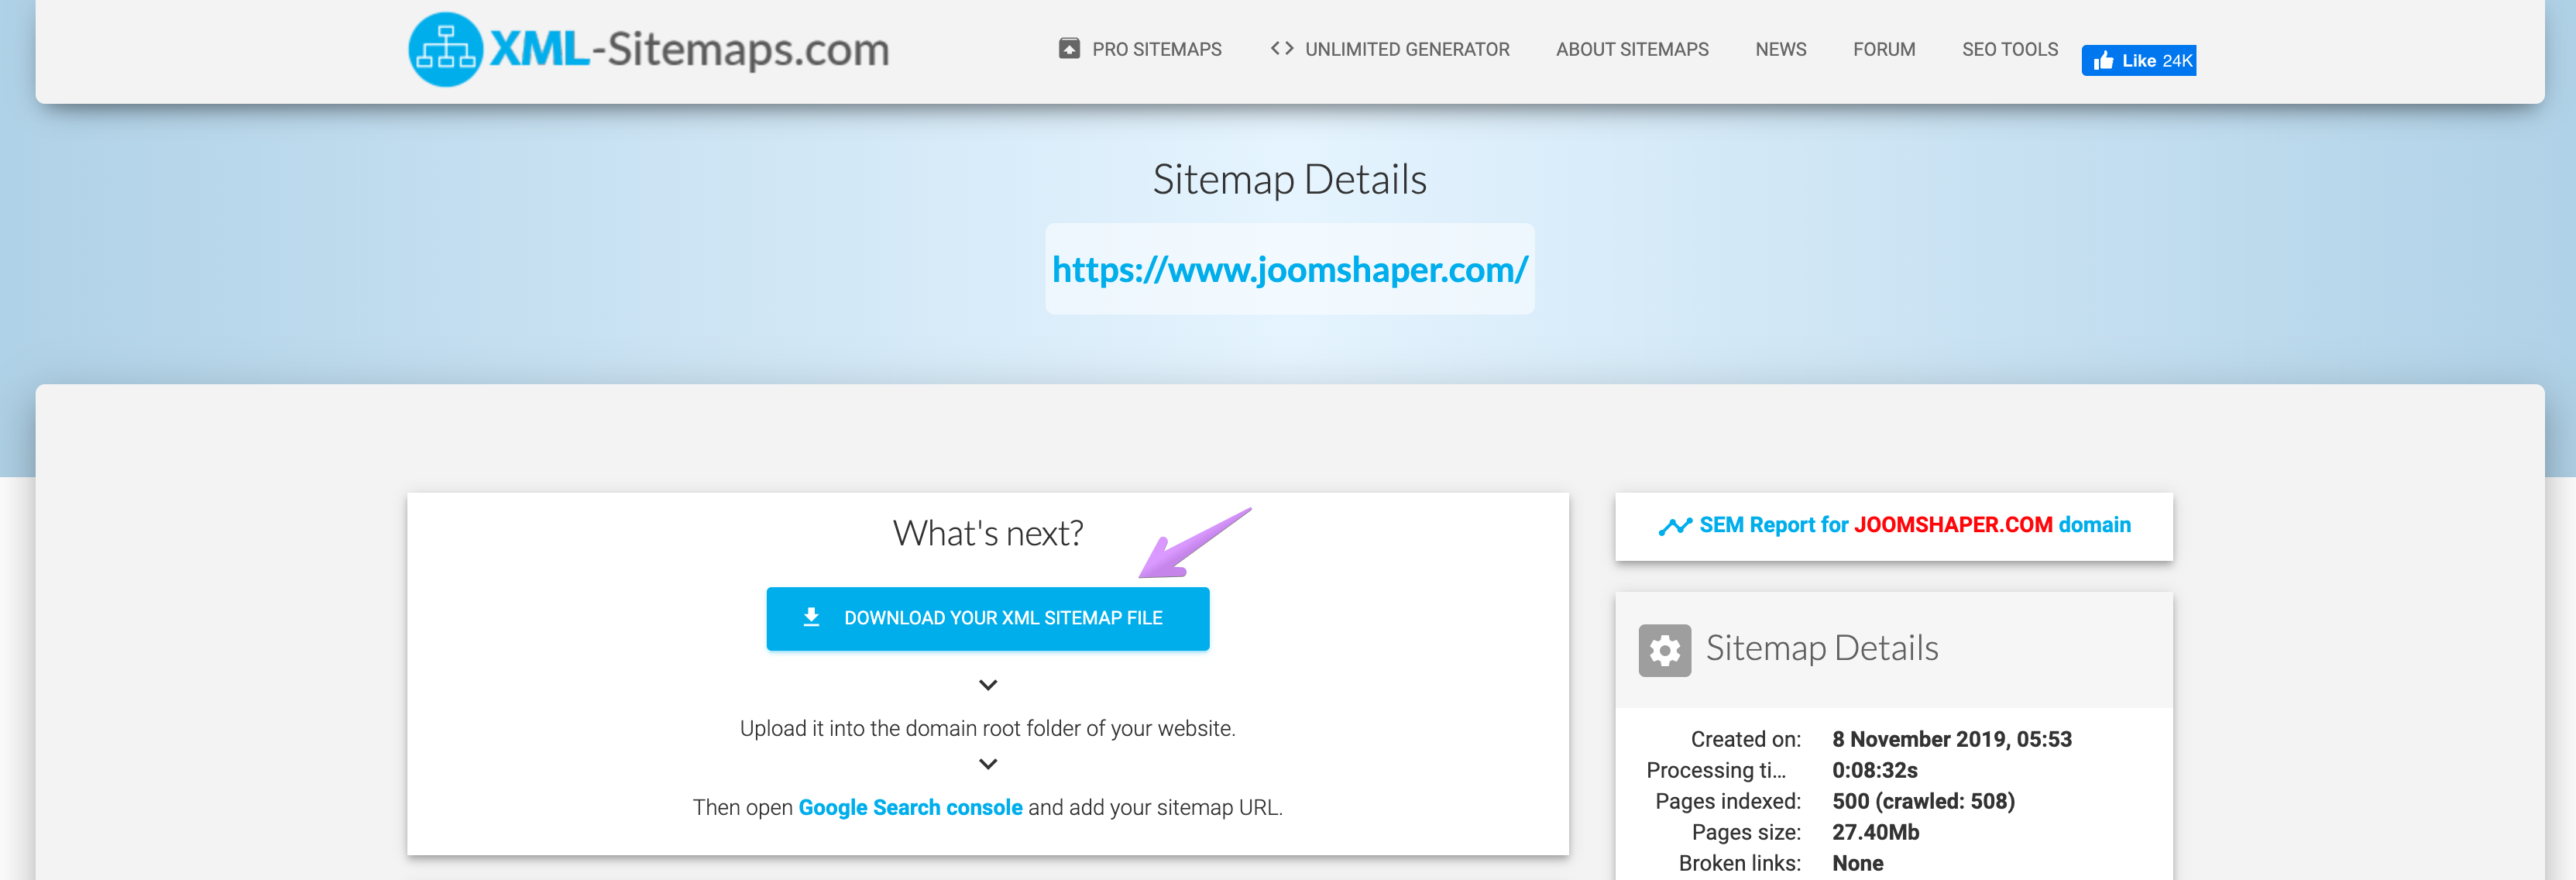 How to Create an XML Sitemap For Your Joomla Website